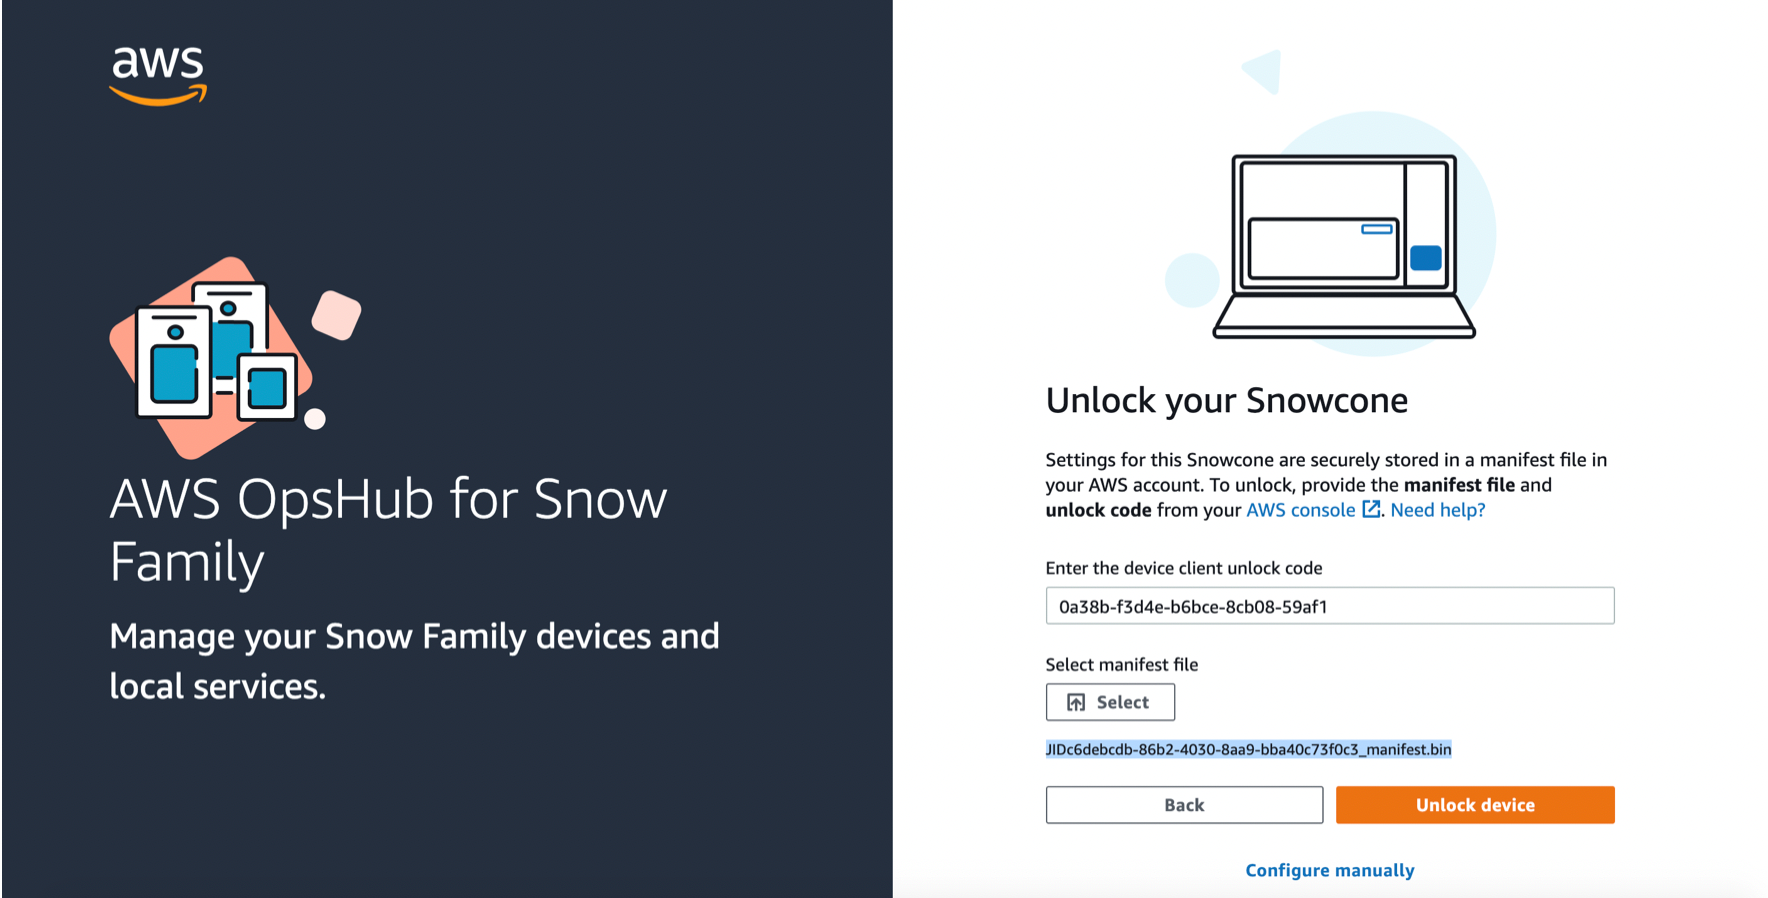 To unlock the Snowcone I open AWS OpsHub for Snow Family on my laptop, and choose the Snowcone option.